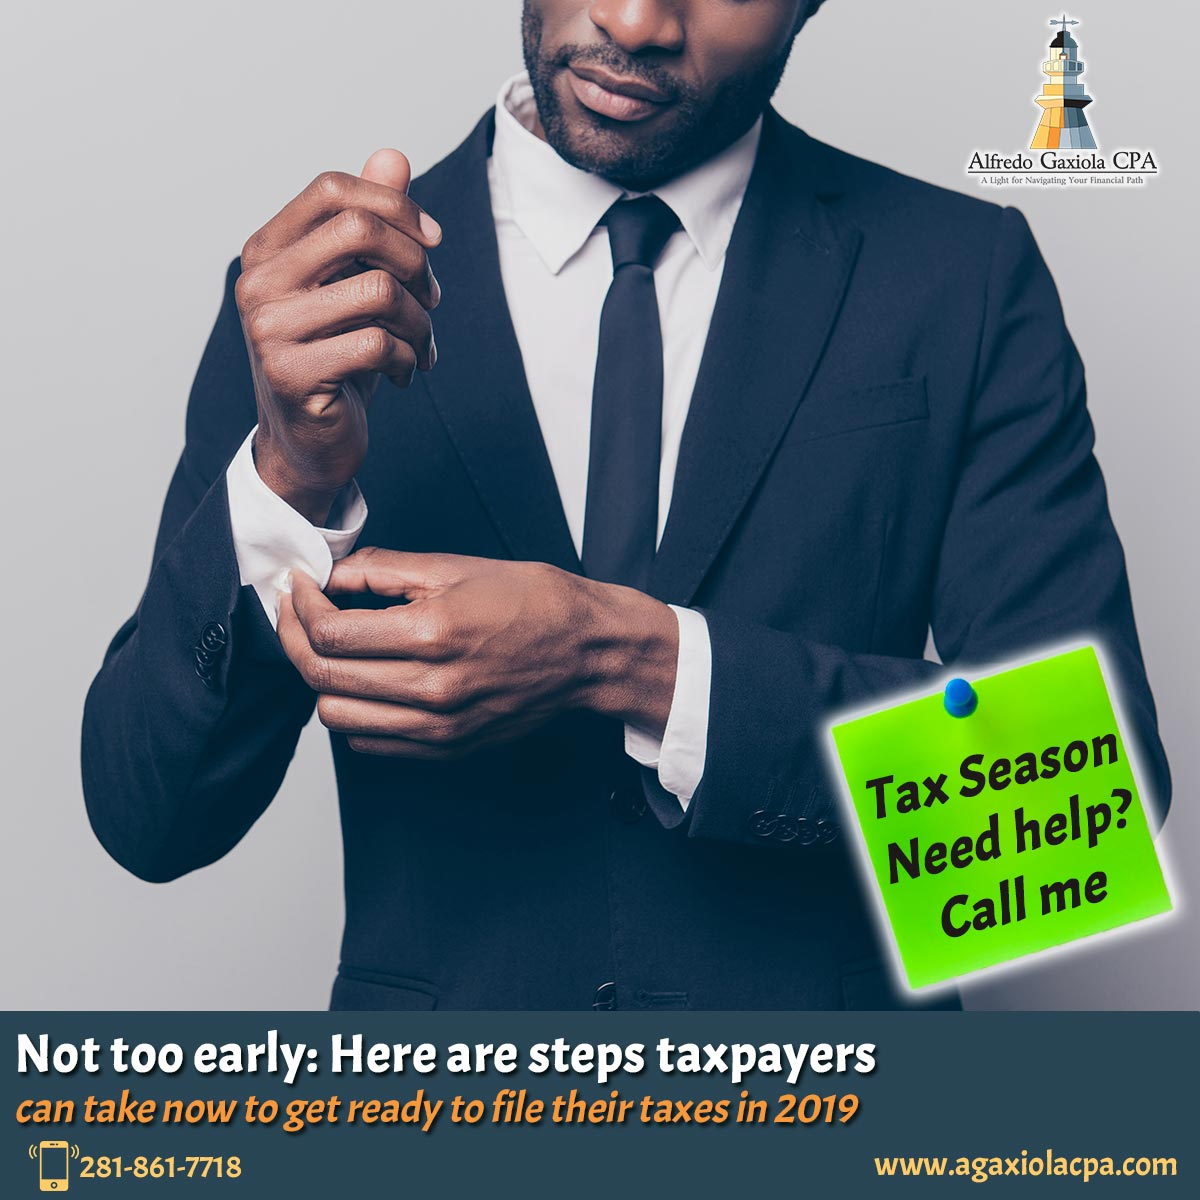 Alfredo Gaxiola, CPA - Not too early: Here are steps taxpayers can